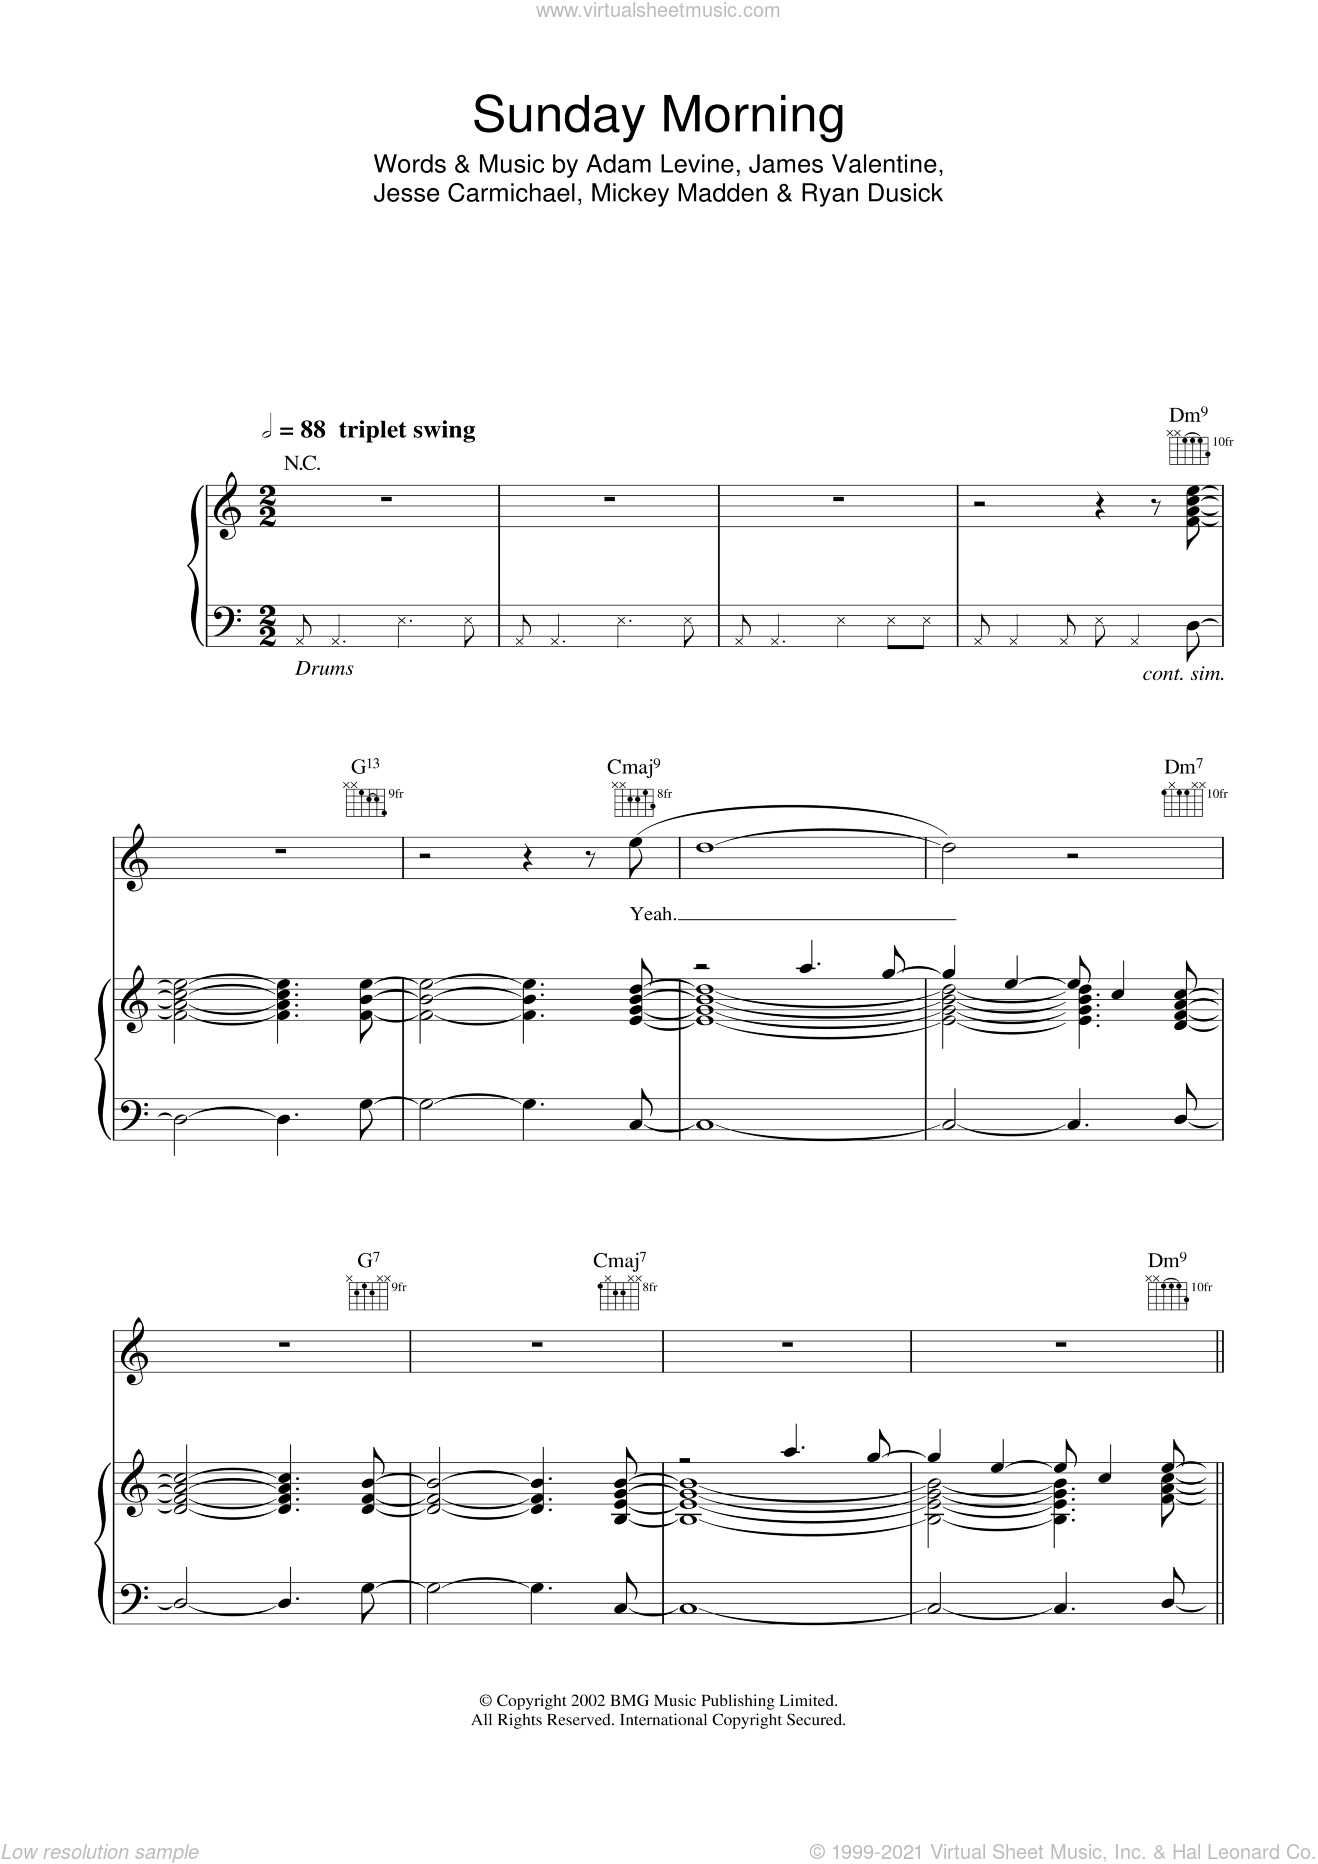 Sunday Morning sheet music for voice, piano or guitar by Maroon 5